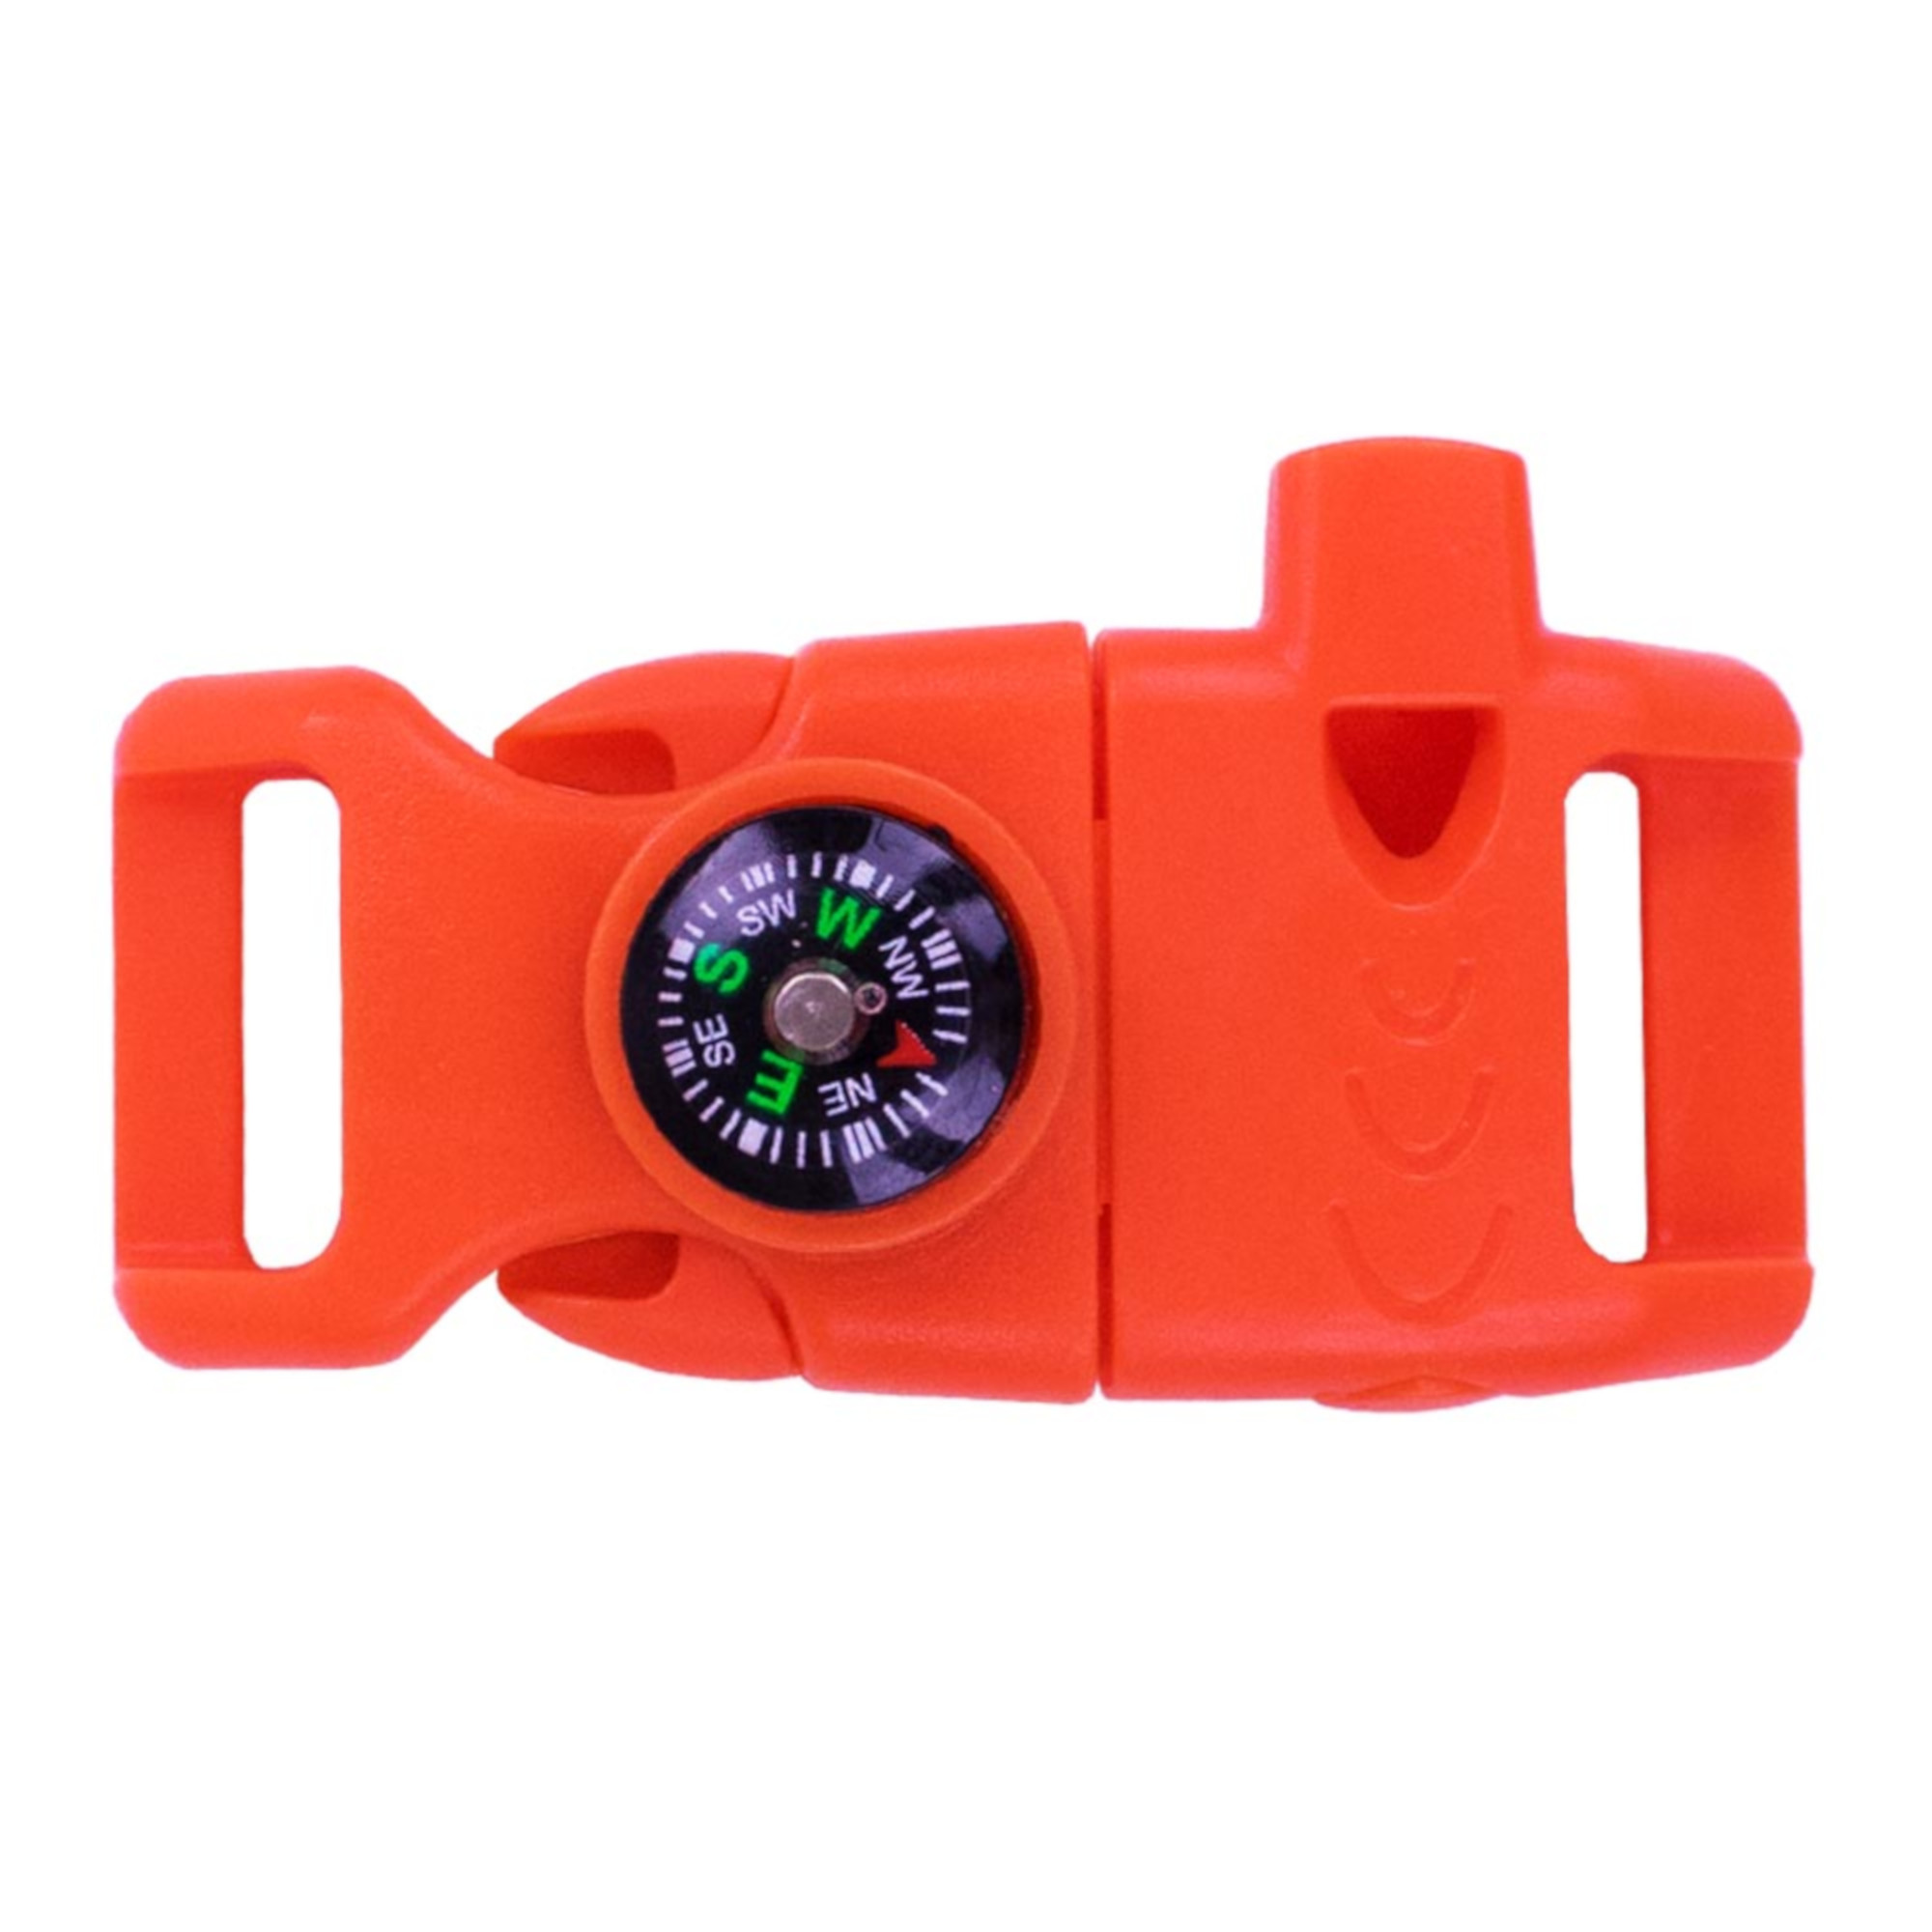 """Paracord Planet Plastic Side Release Emergency Survival Utility Buckles & Whistle Buckles – Choose from 1/2"""", 5/8"""" or 3/4"""" – Multiple Color Options – Multiple Pack Sizes Available"""